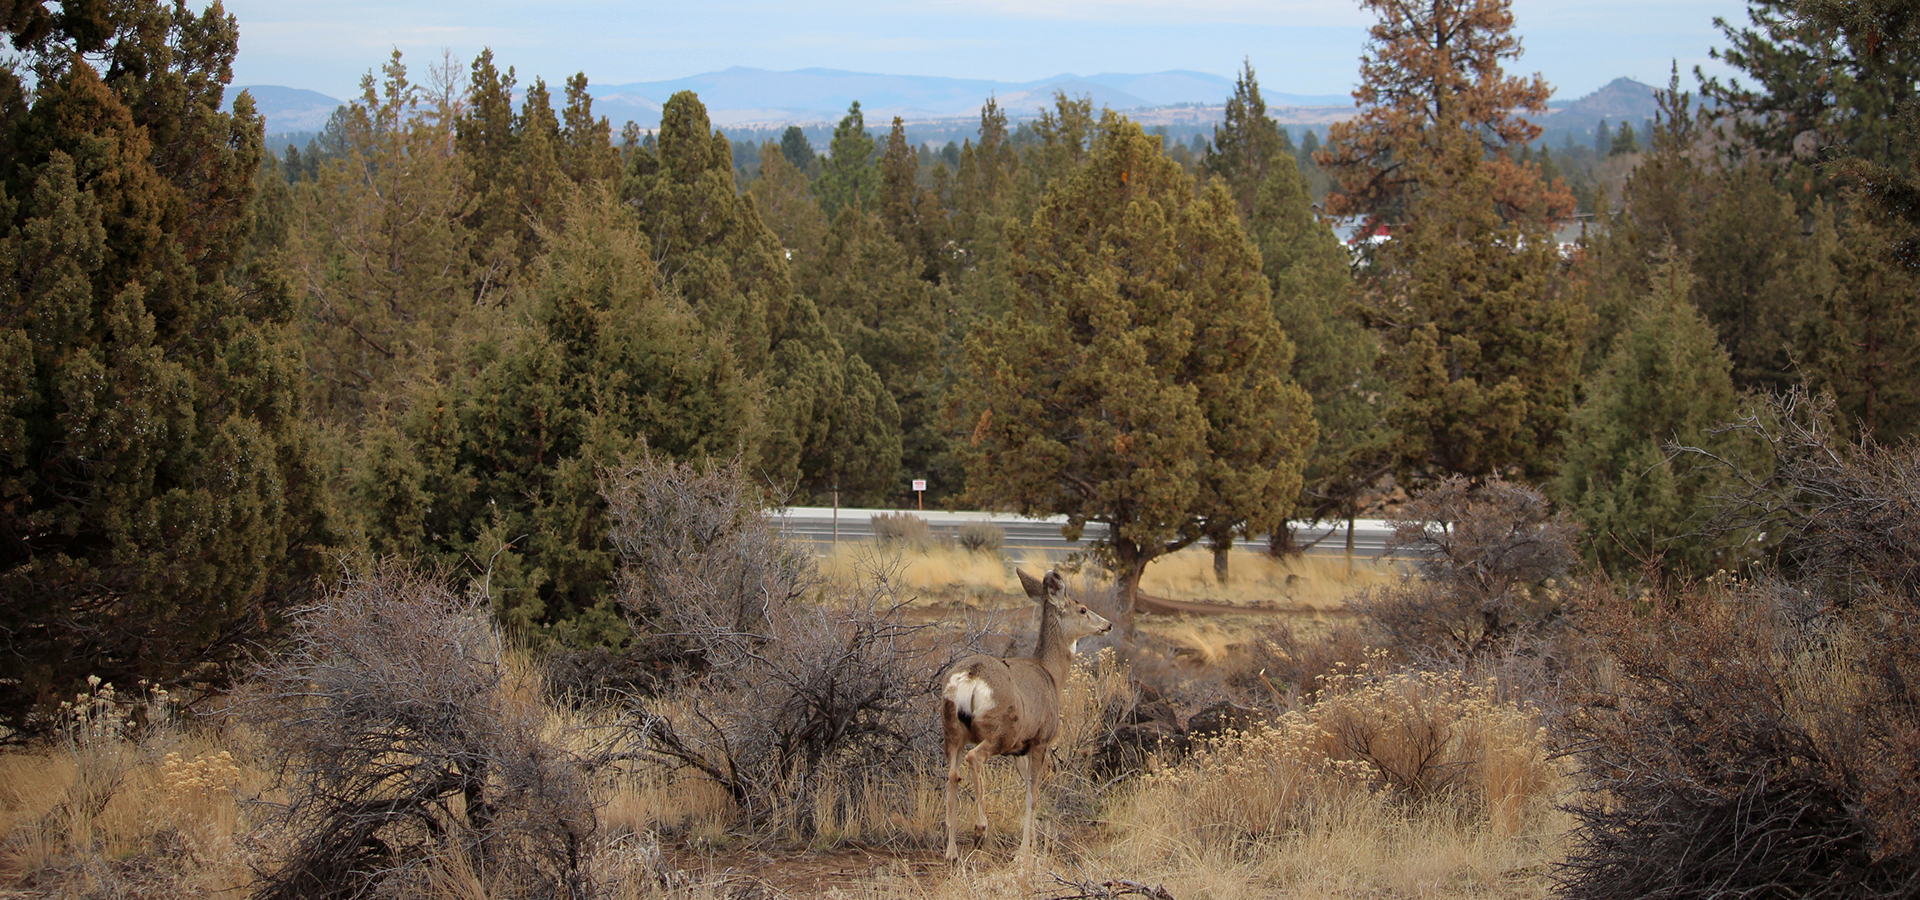 Stone-Creek-Park-Wildlife-and-Newberry-Crater